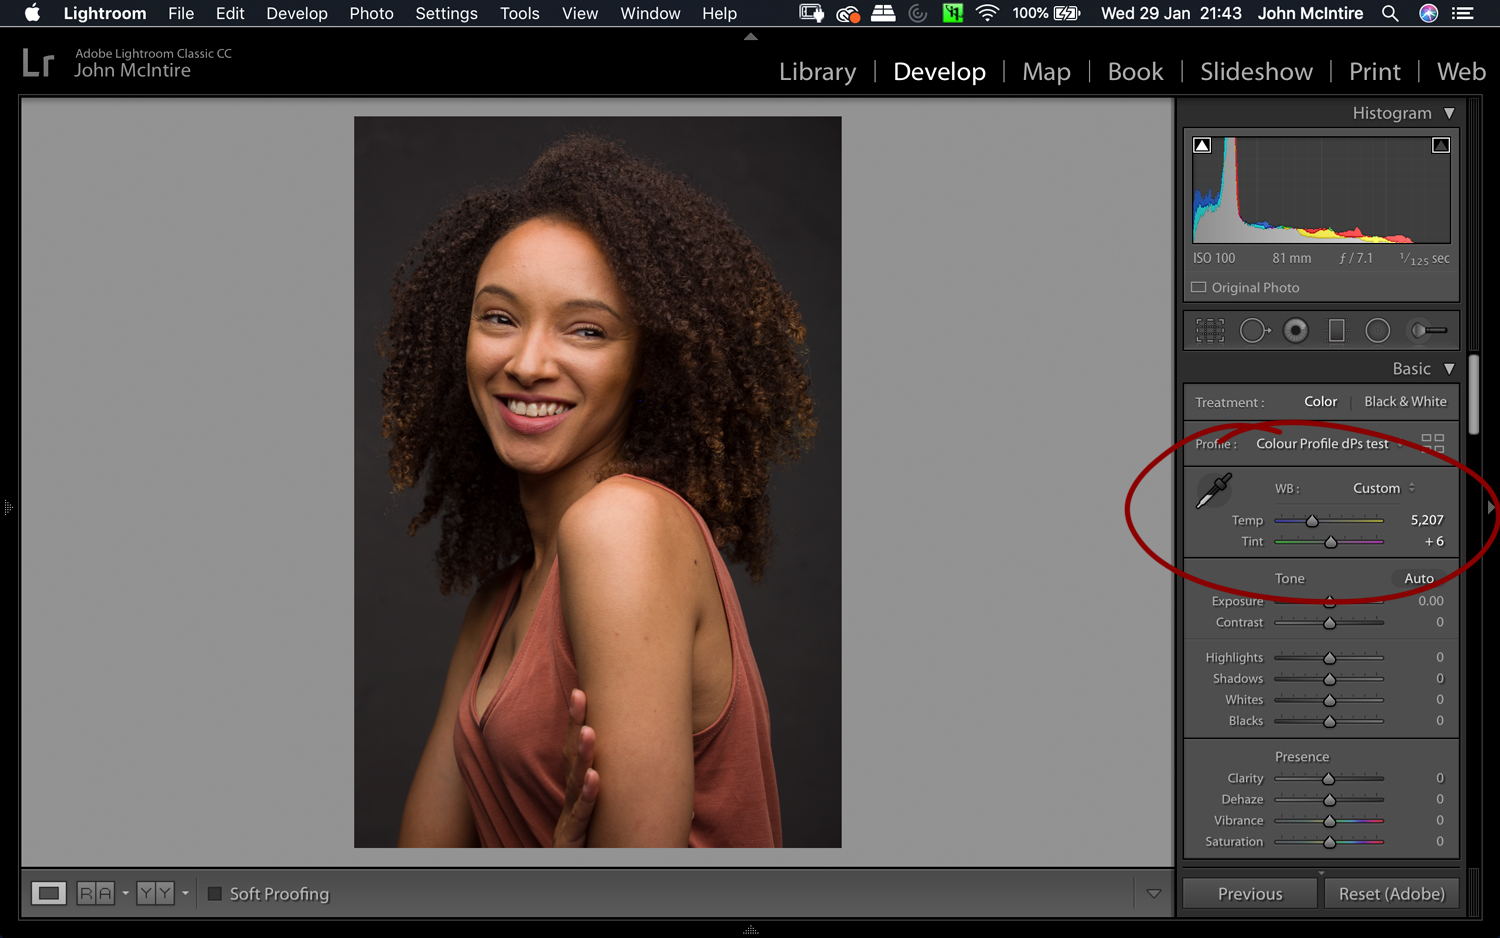 Things to do to every photo in Lightroom - White Balance